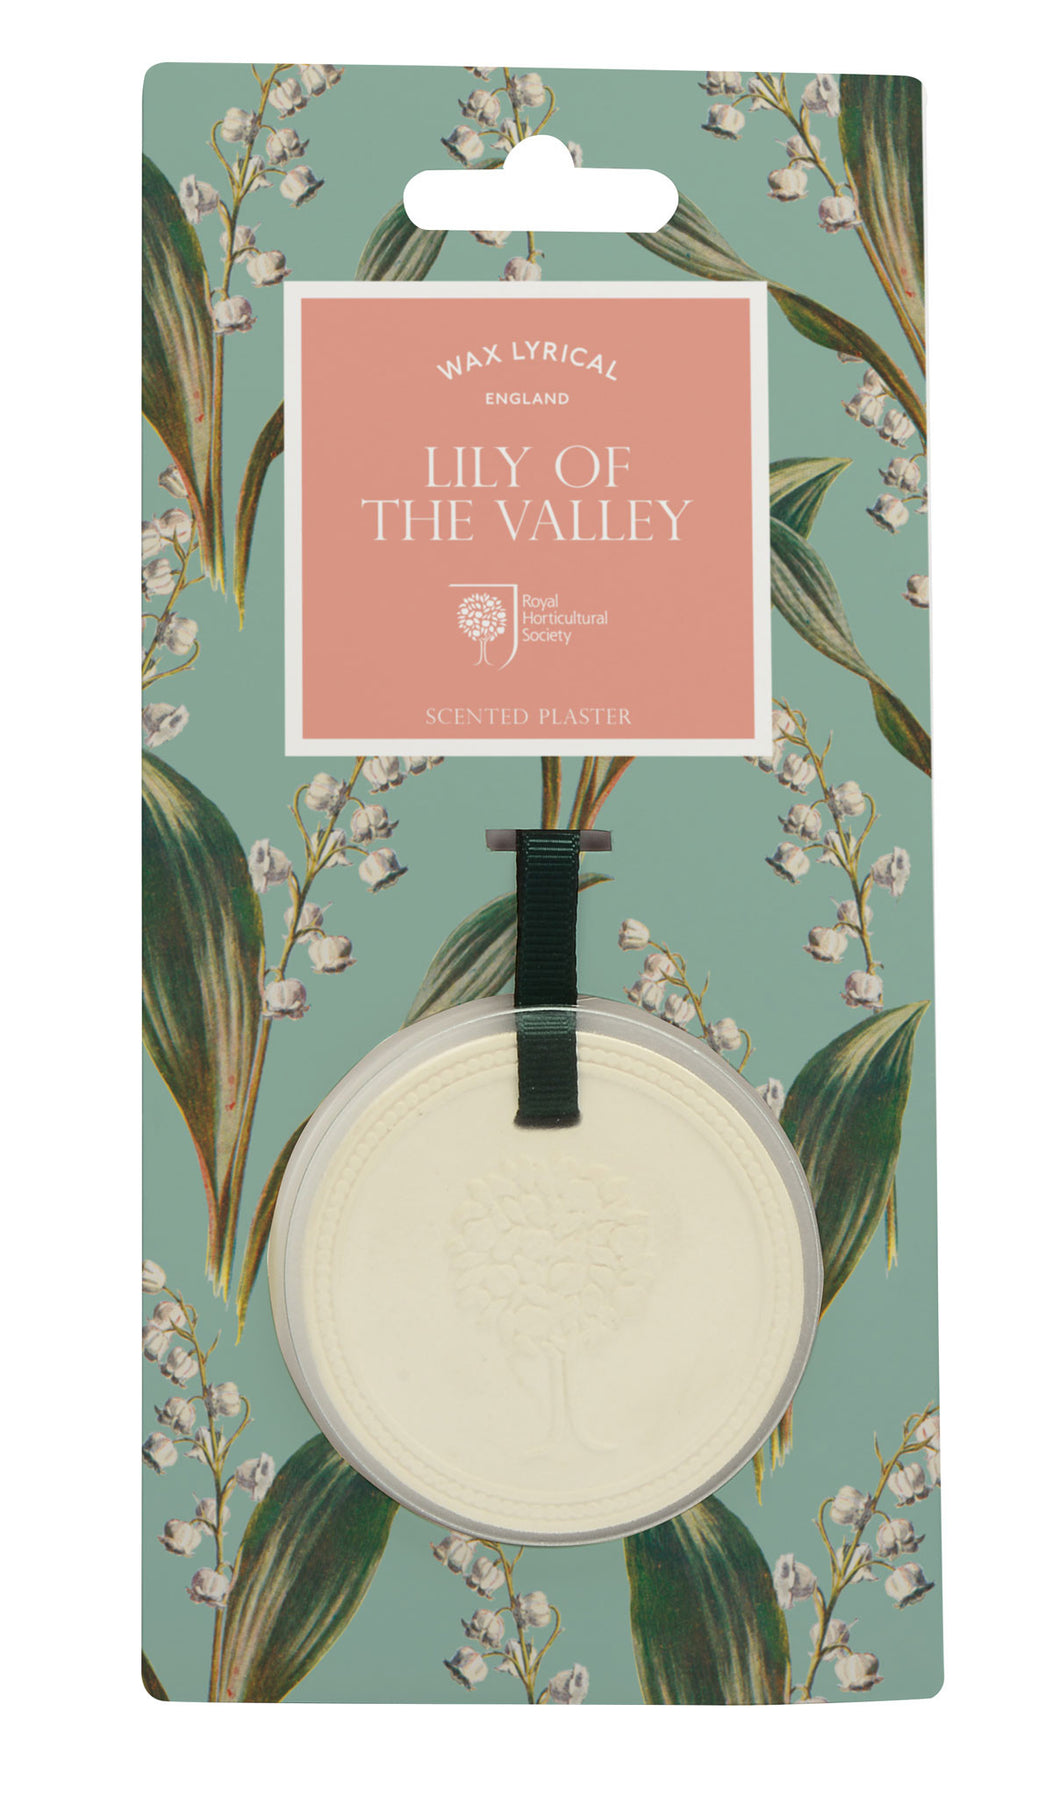 Wax Lyrical RHS Fragrant Garden Scented Plaque Lily of the Valley - LAST FEW AVAILABLE!